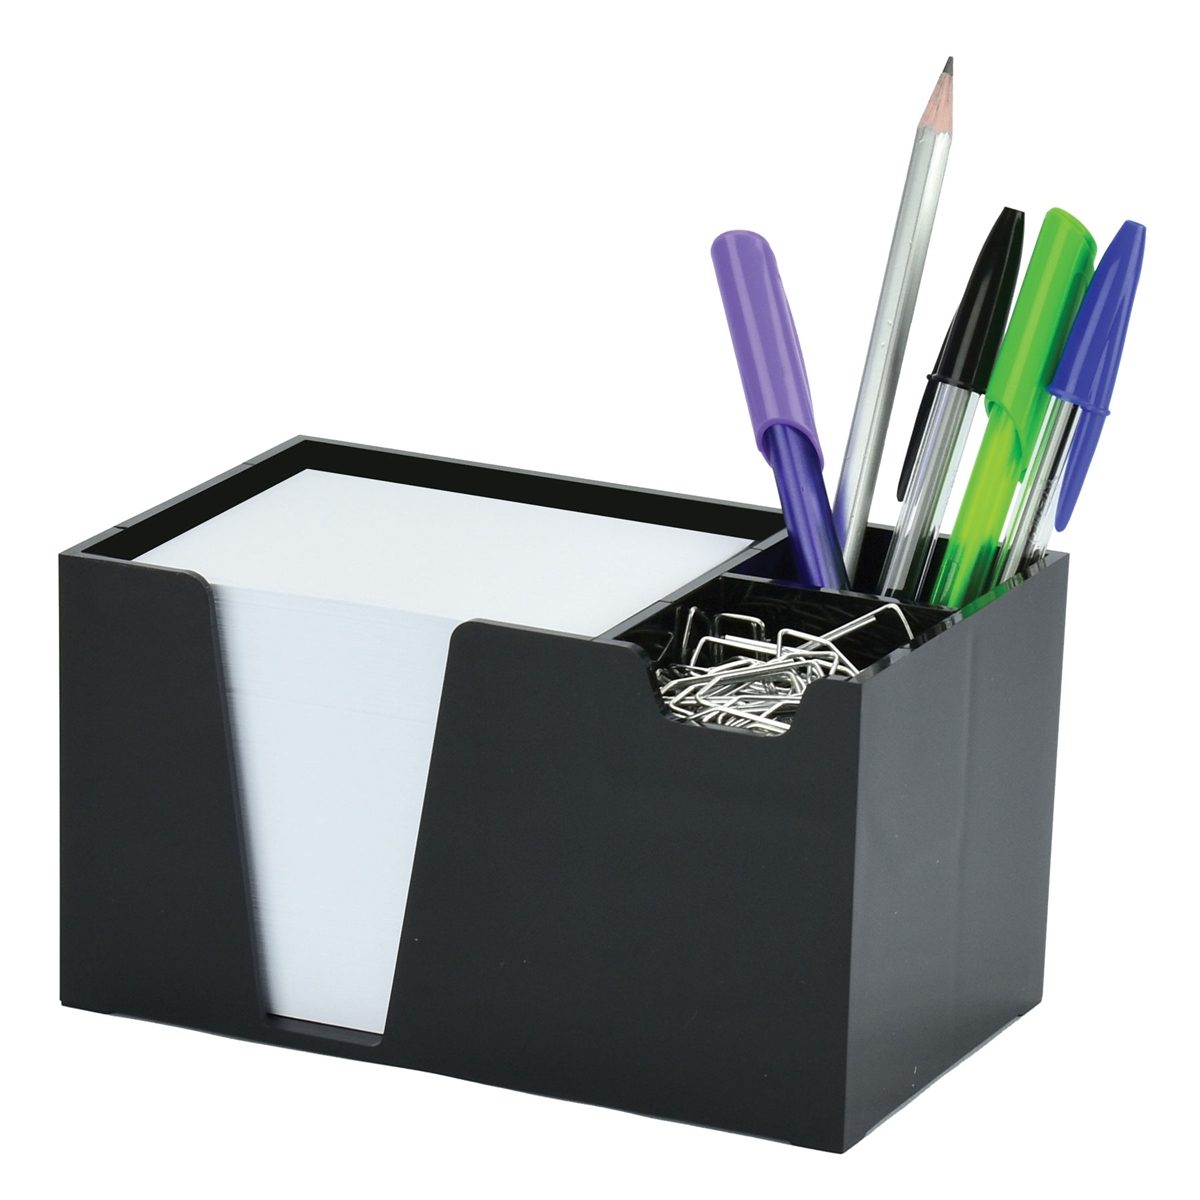 Acrimet Desk Organizer Pencil Paper Clip Holder Black Color (With Paper)